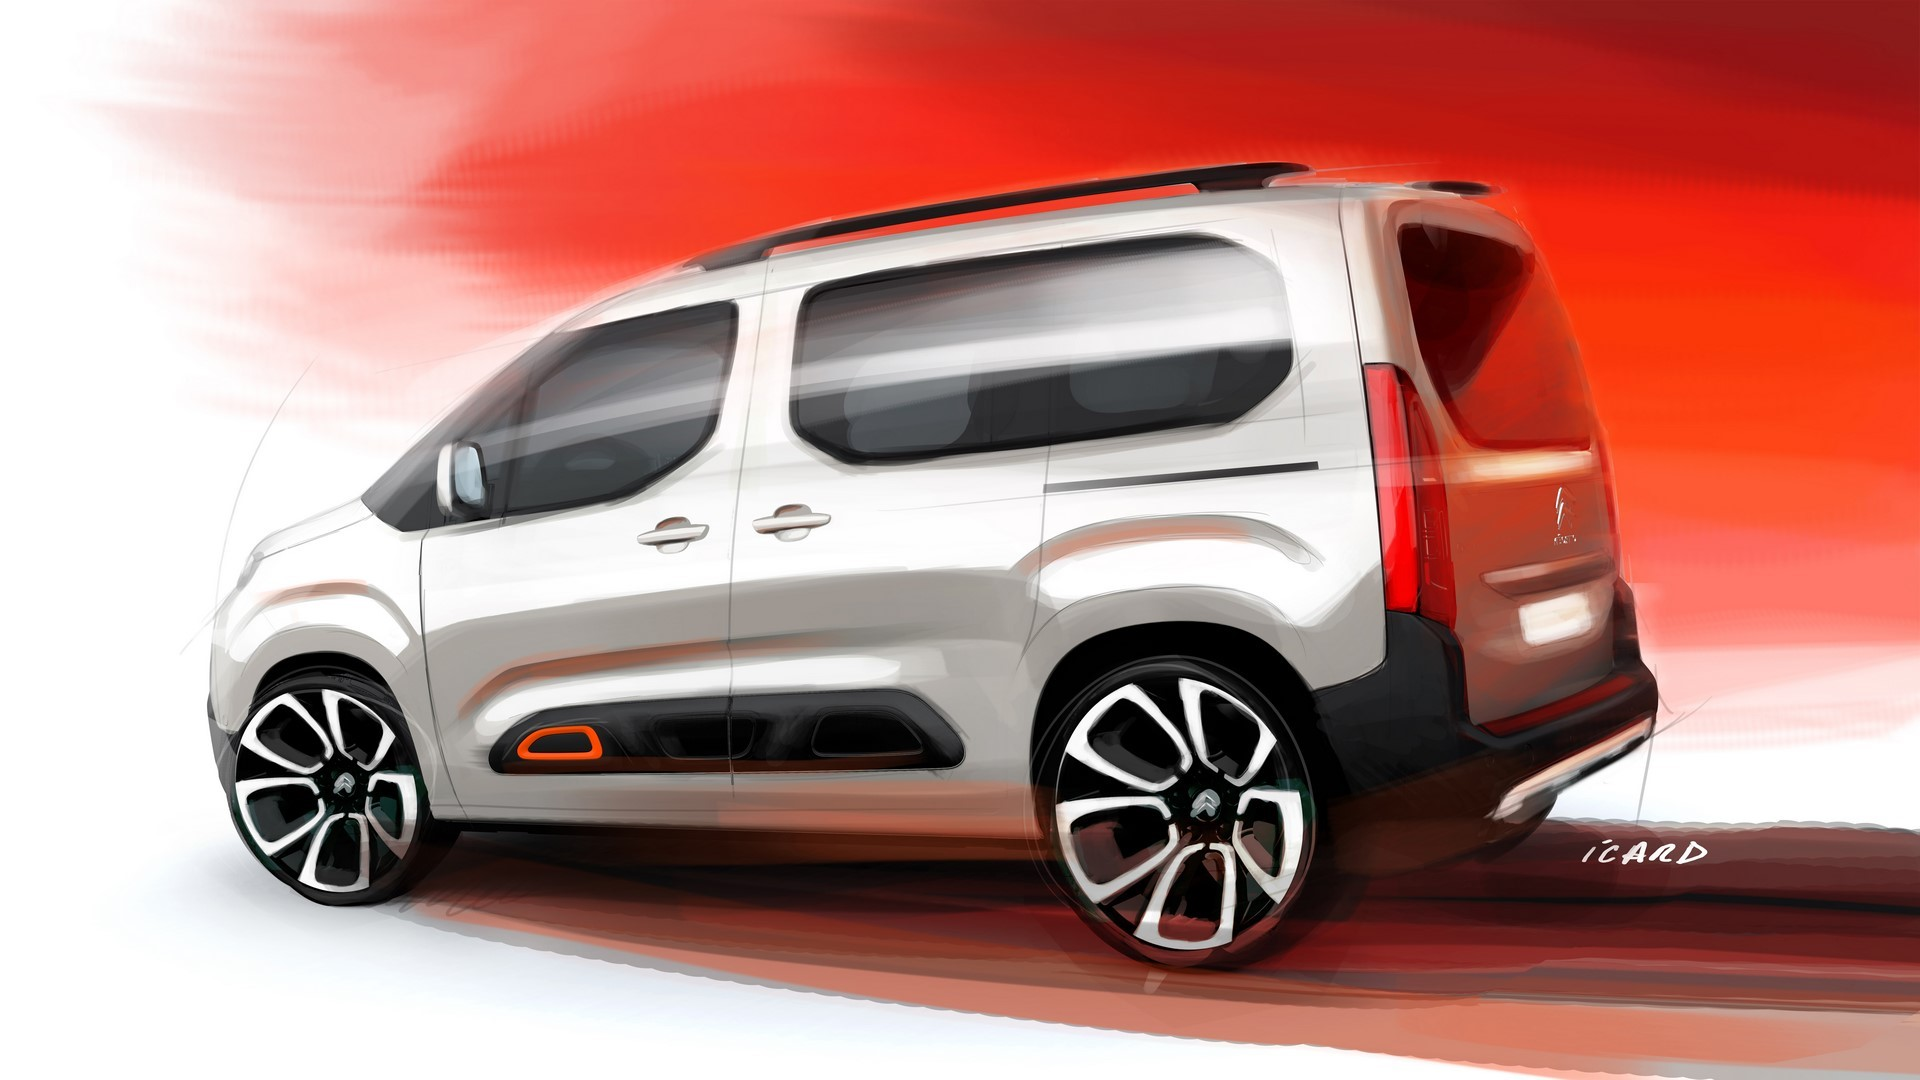 Citroen Berlingo 2018 (51)